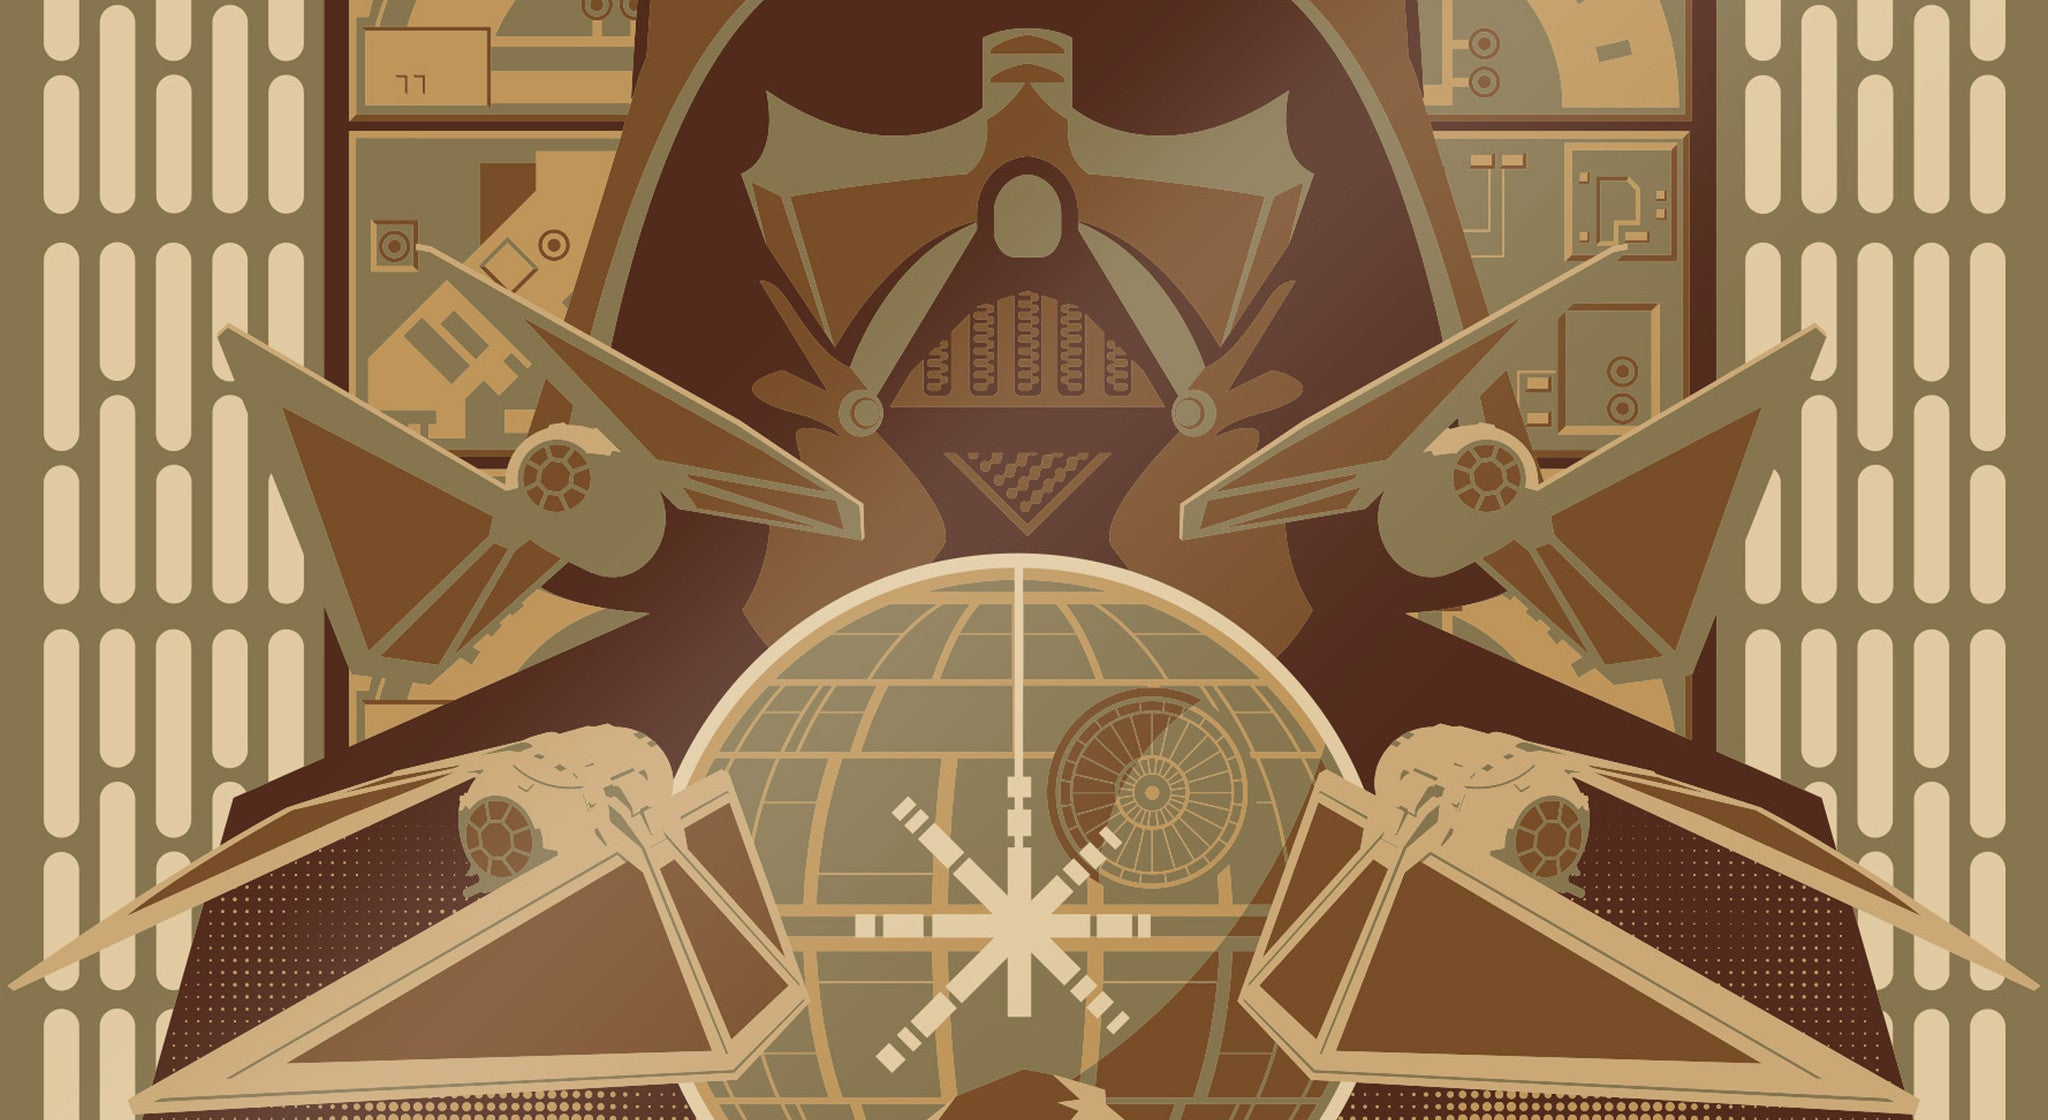 EXCLUSIVE Rogue One 50 Piece Limited Edition Metallic Gold Screen Print by Mark Daniels